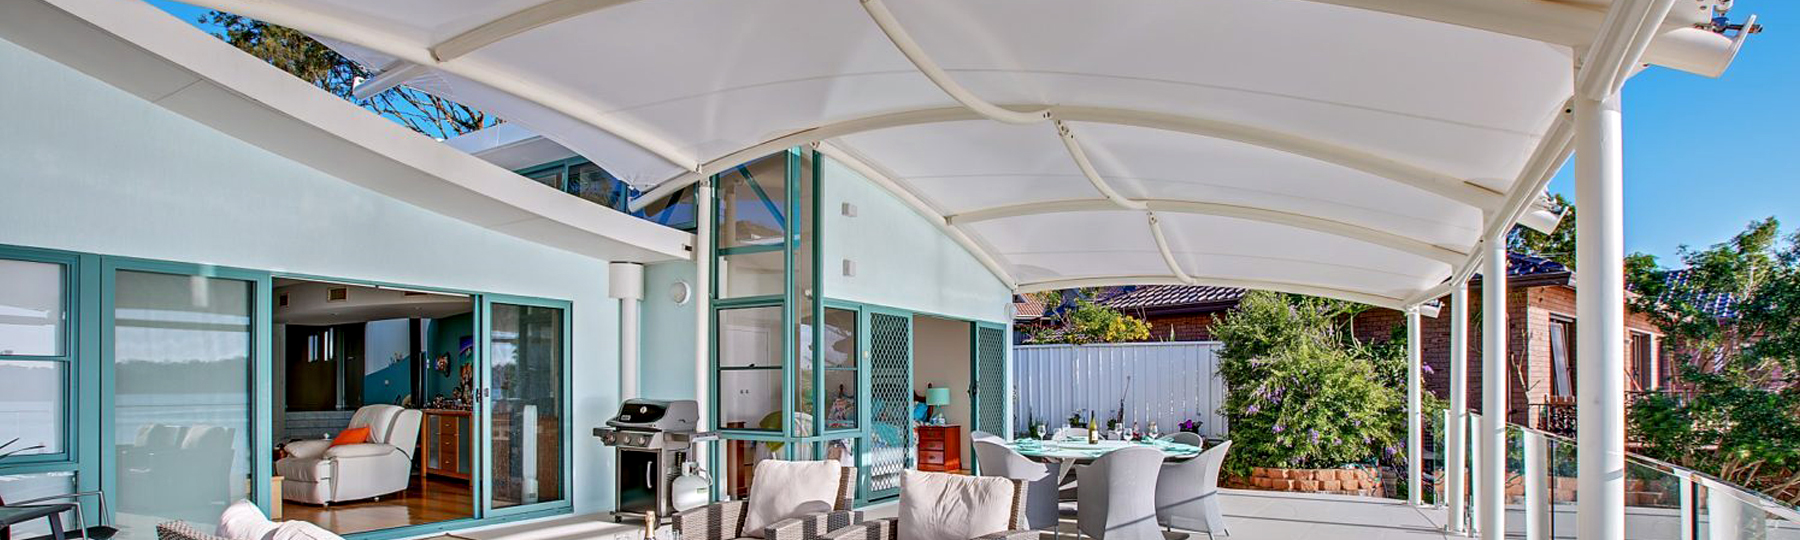 Shade To Order Australia - Residential Shade Sail over balcony- Superior custom sails, Newcastle sails